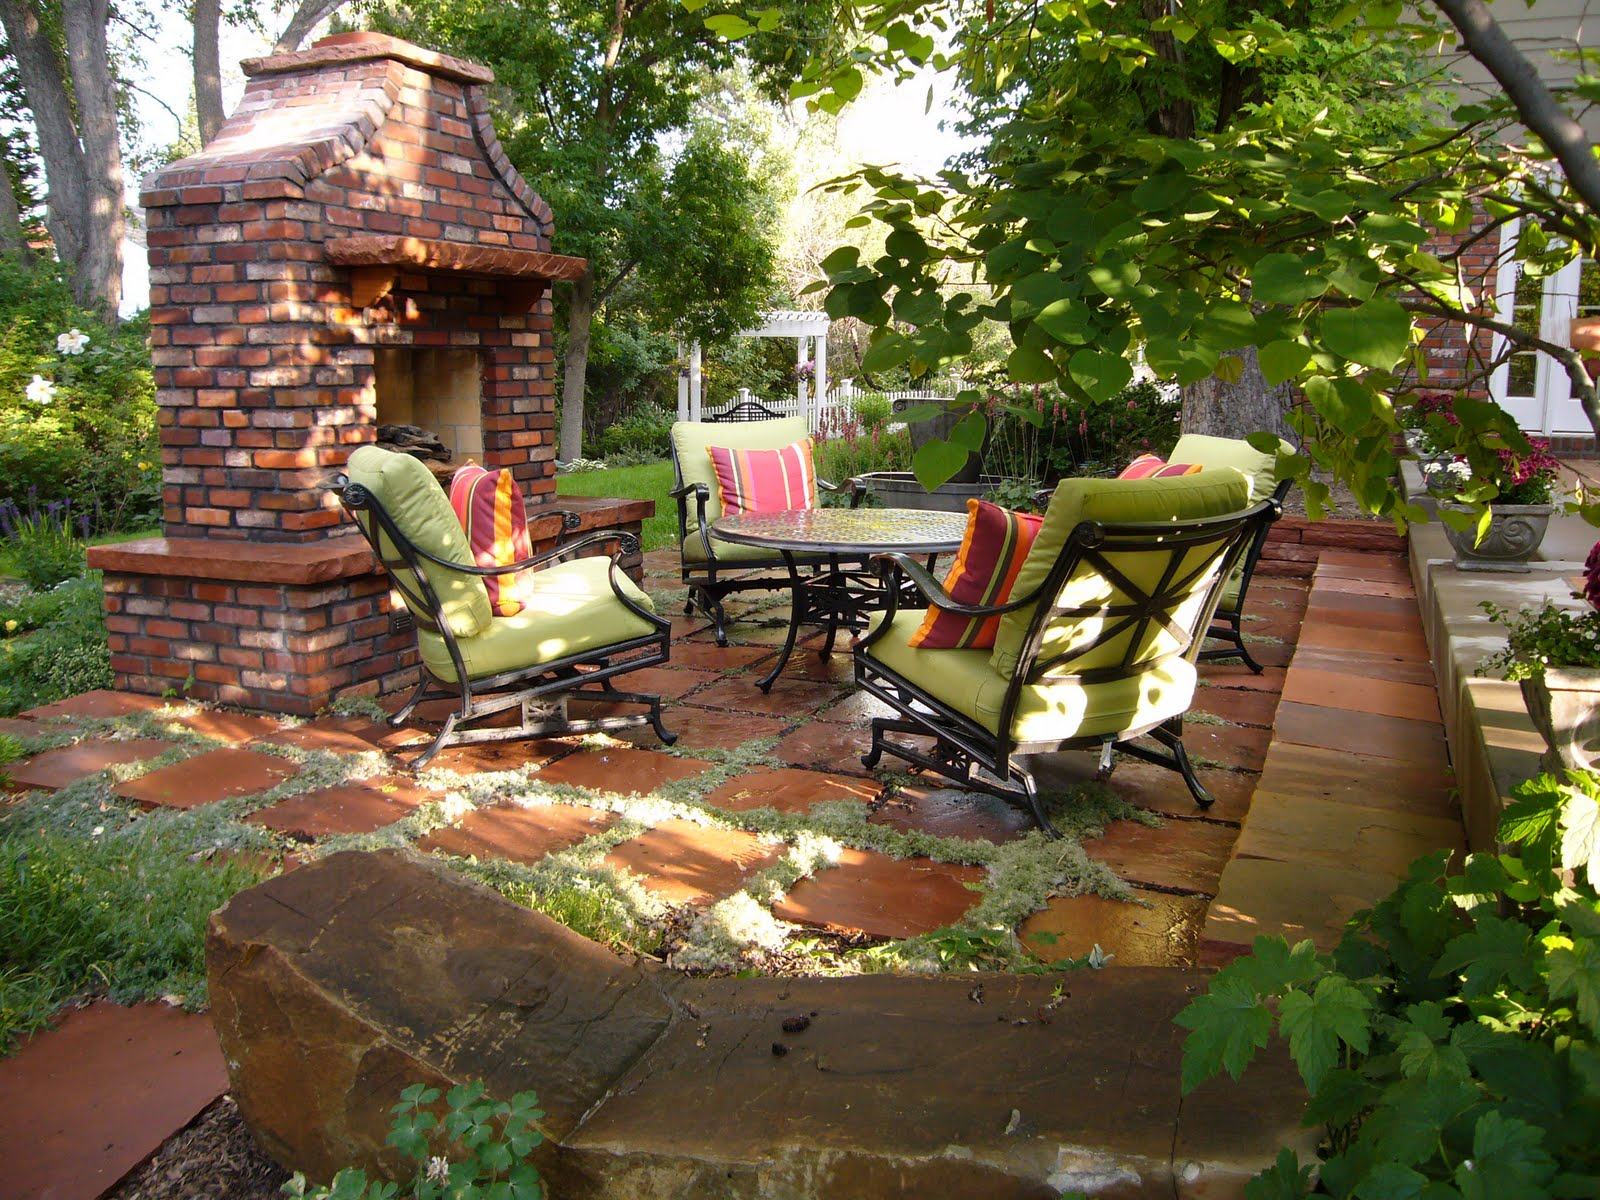 Decorating the Patio: Get Ready for Outdoor Dining! | GR ... on home outdoor water features, home outdoor landscaping, home outdoor fence designs, home outdoor gazebos, home outdoor atrium designs, home outdoor fountains, home outdoor pool, blue outdoor patio designs,